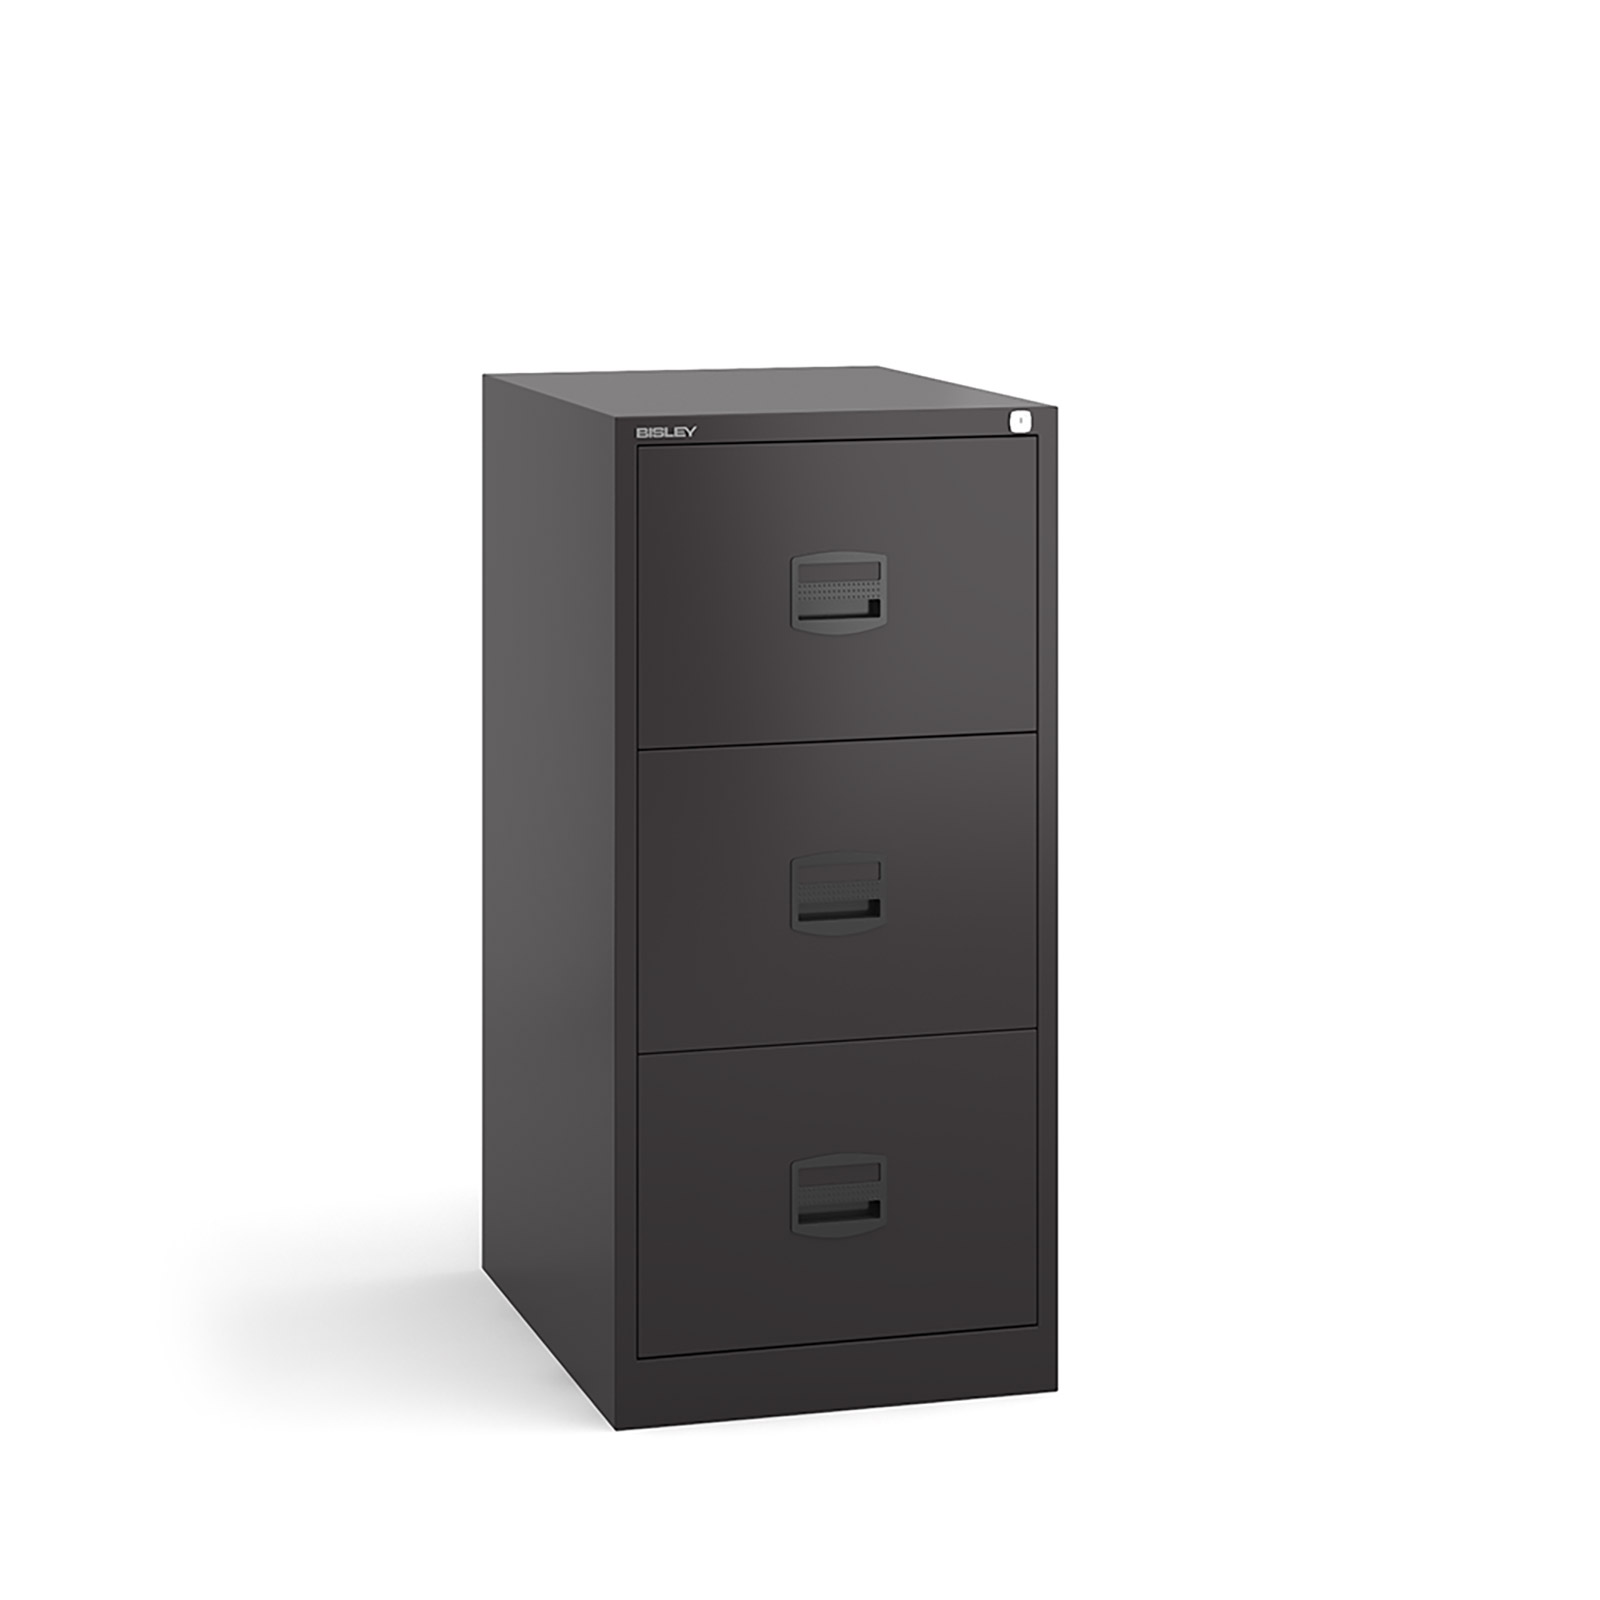 3 drawer contract filing cabinet in Black